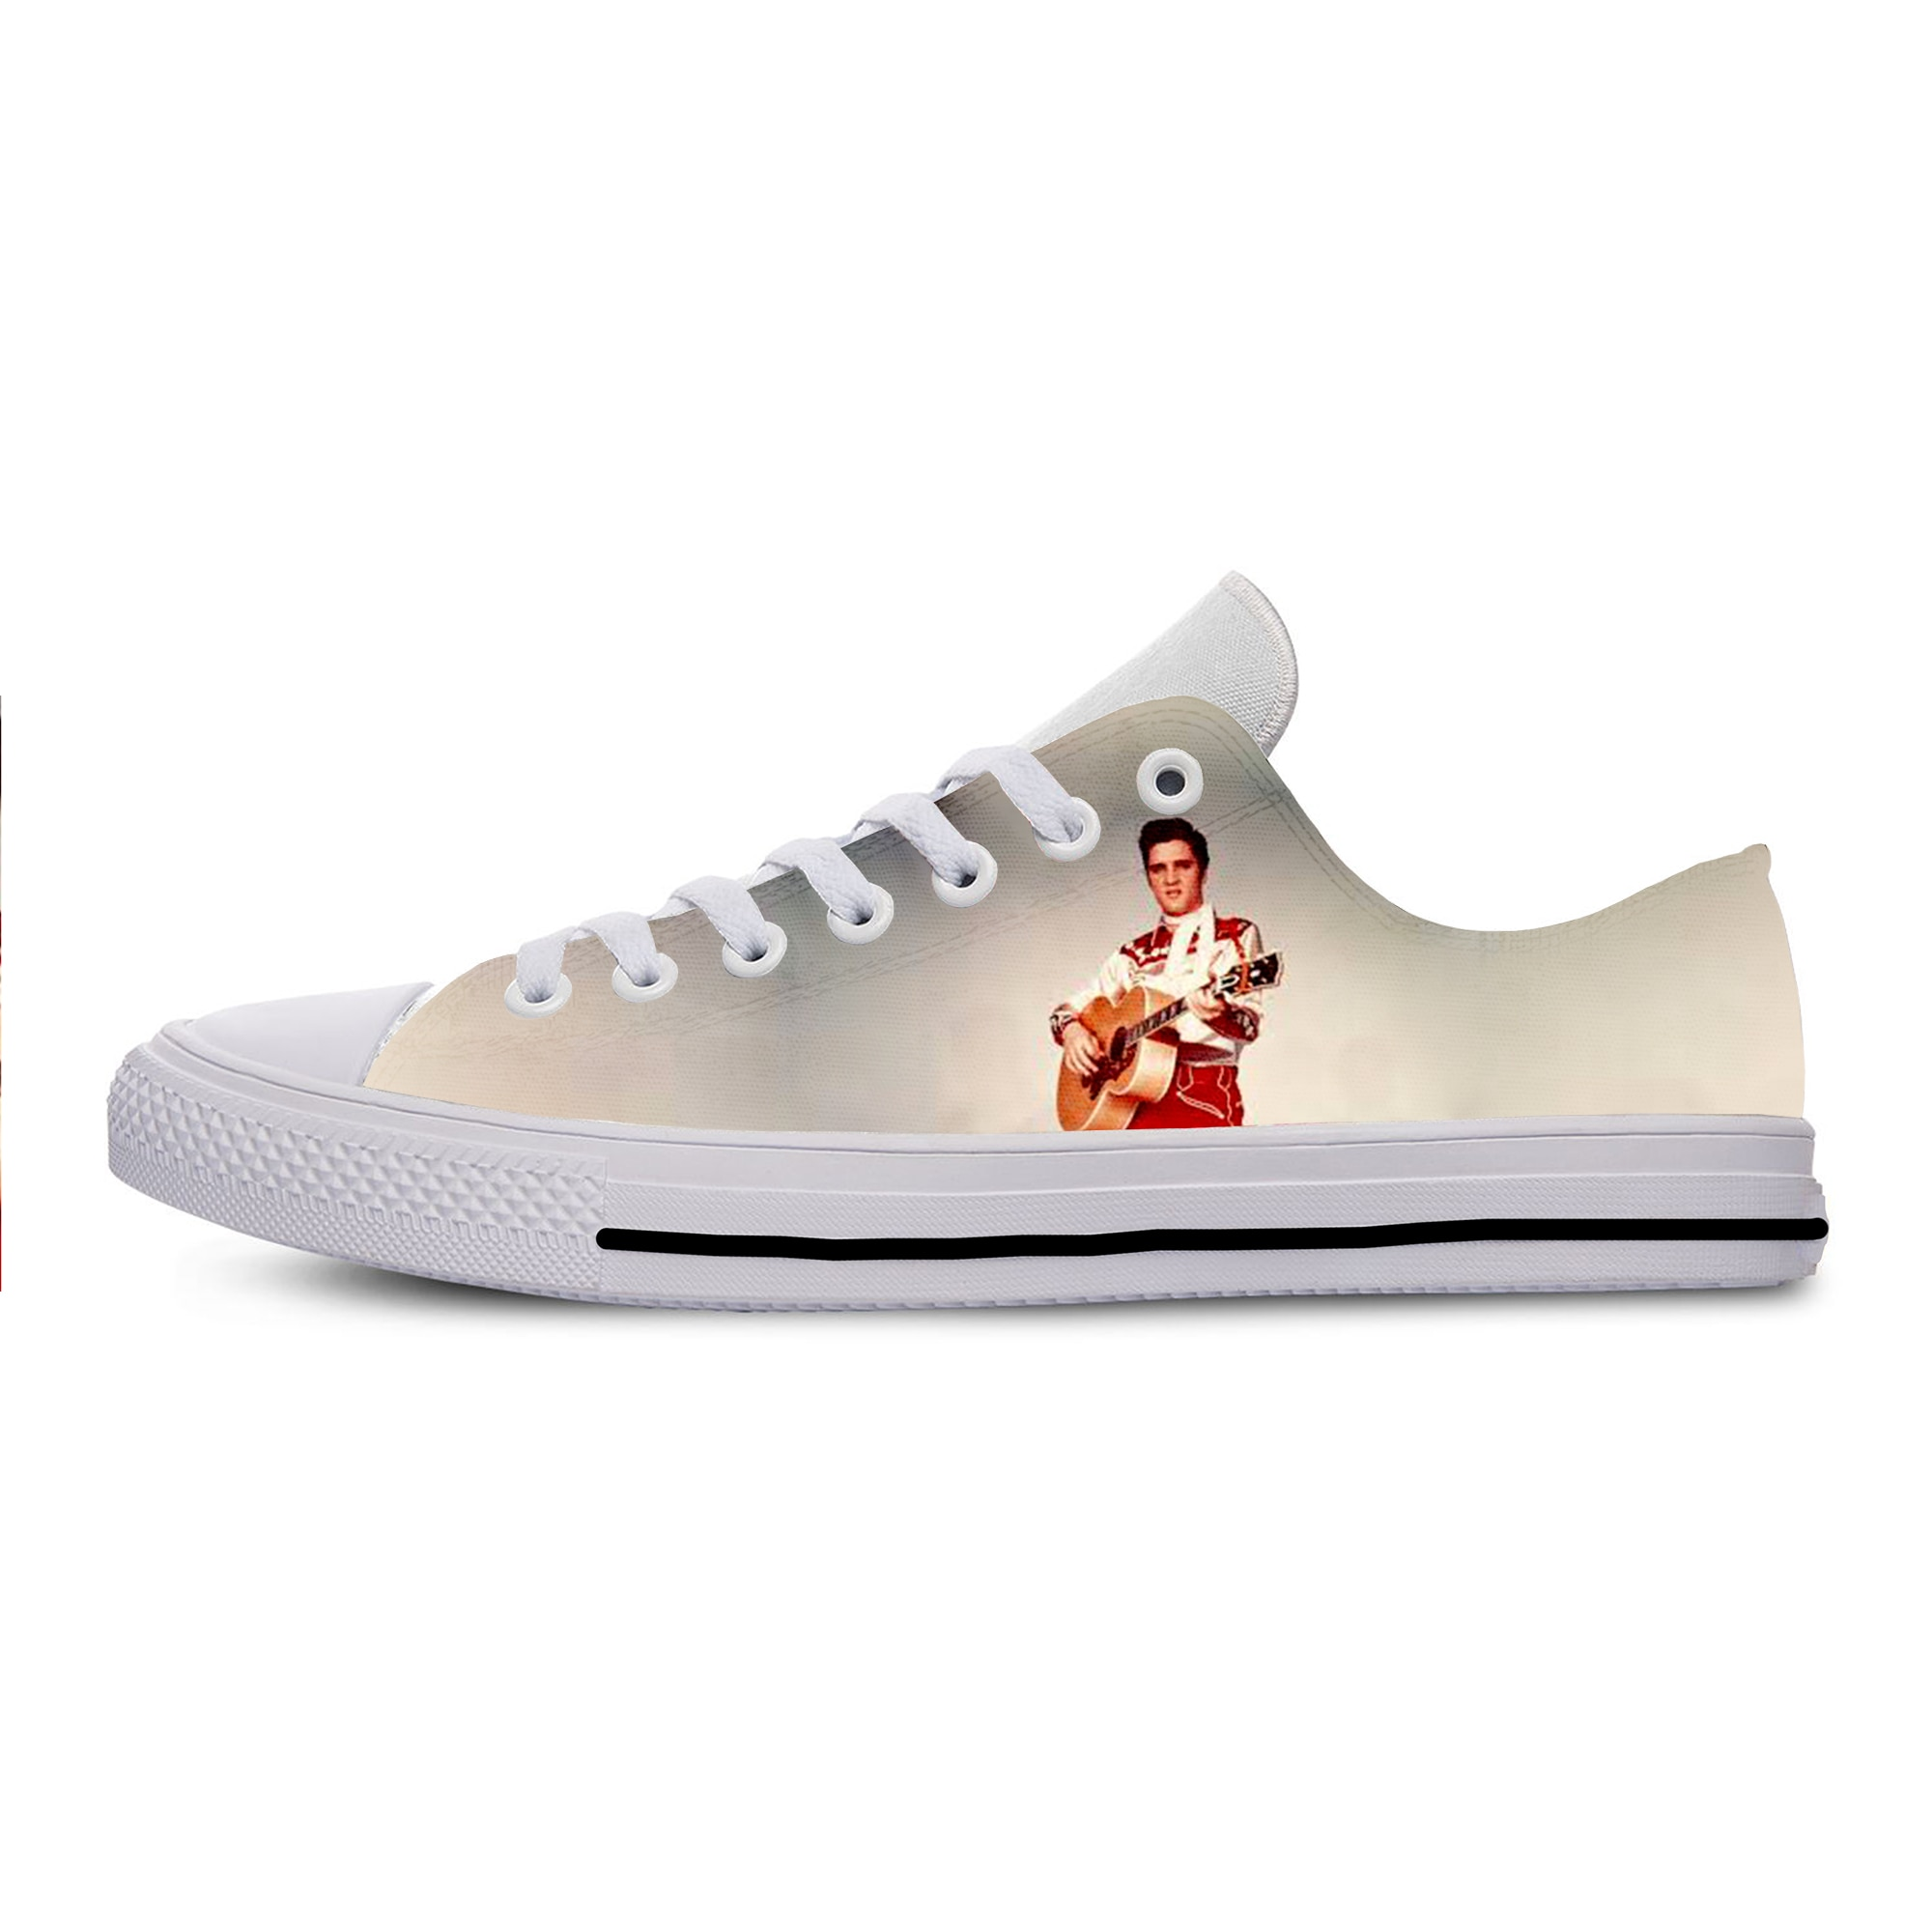 2019 Hot Cool Fashion Pop Funny Summer Rock and Roll Sneakers Handiness Casual Shoes 3D Printed For Men Women Elvis Presley